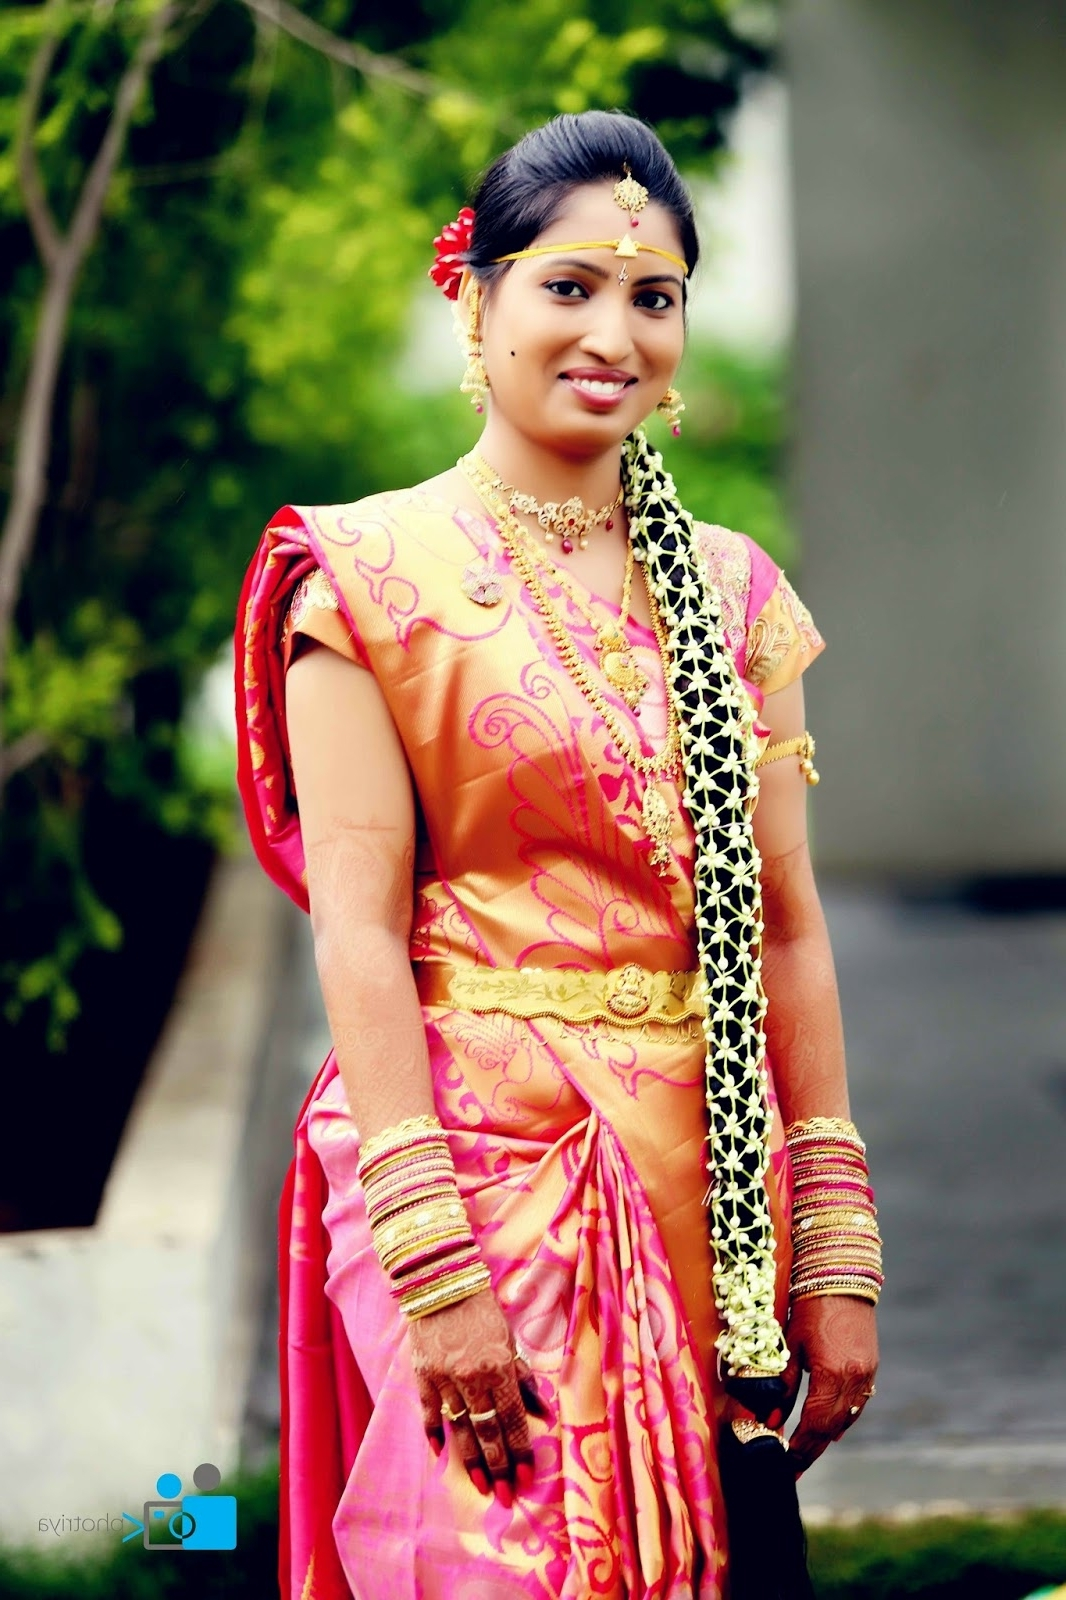 Pelli Poola Jada: Southindian Bridal Hairstyles With Flowers For Recent South Indian Tamil Bridal Wedding Hairstyles (View 15 of 15)